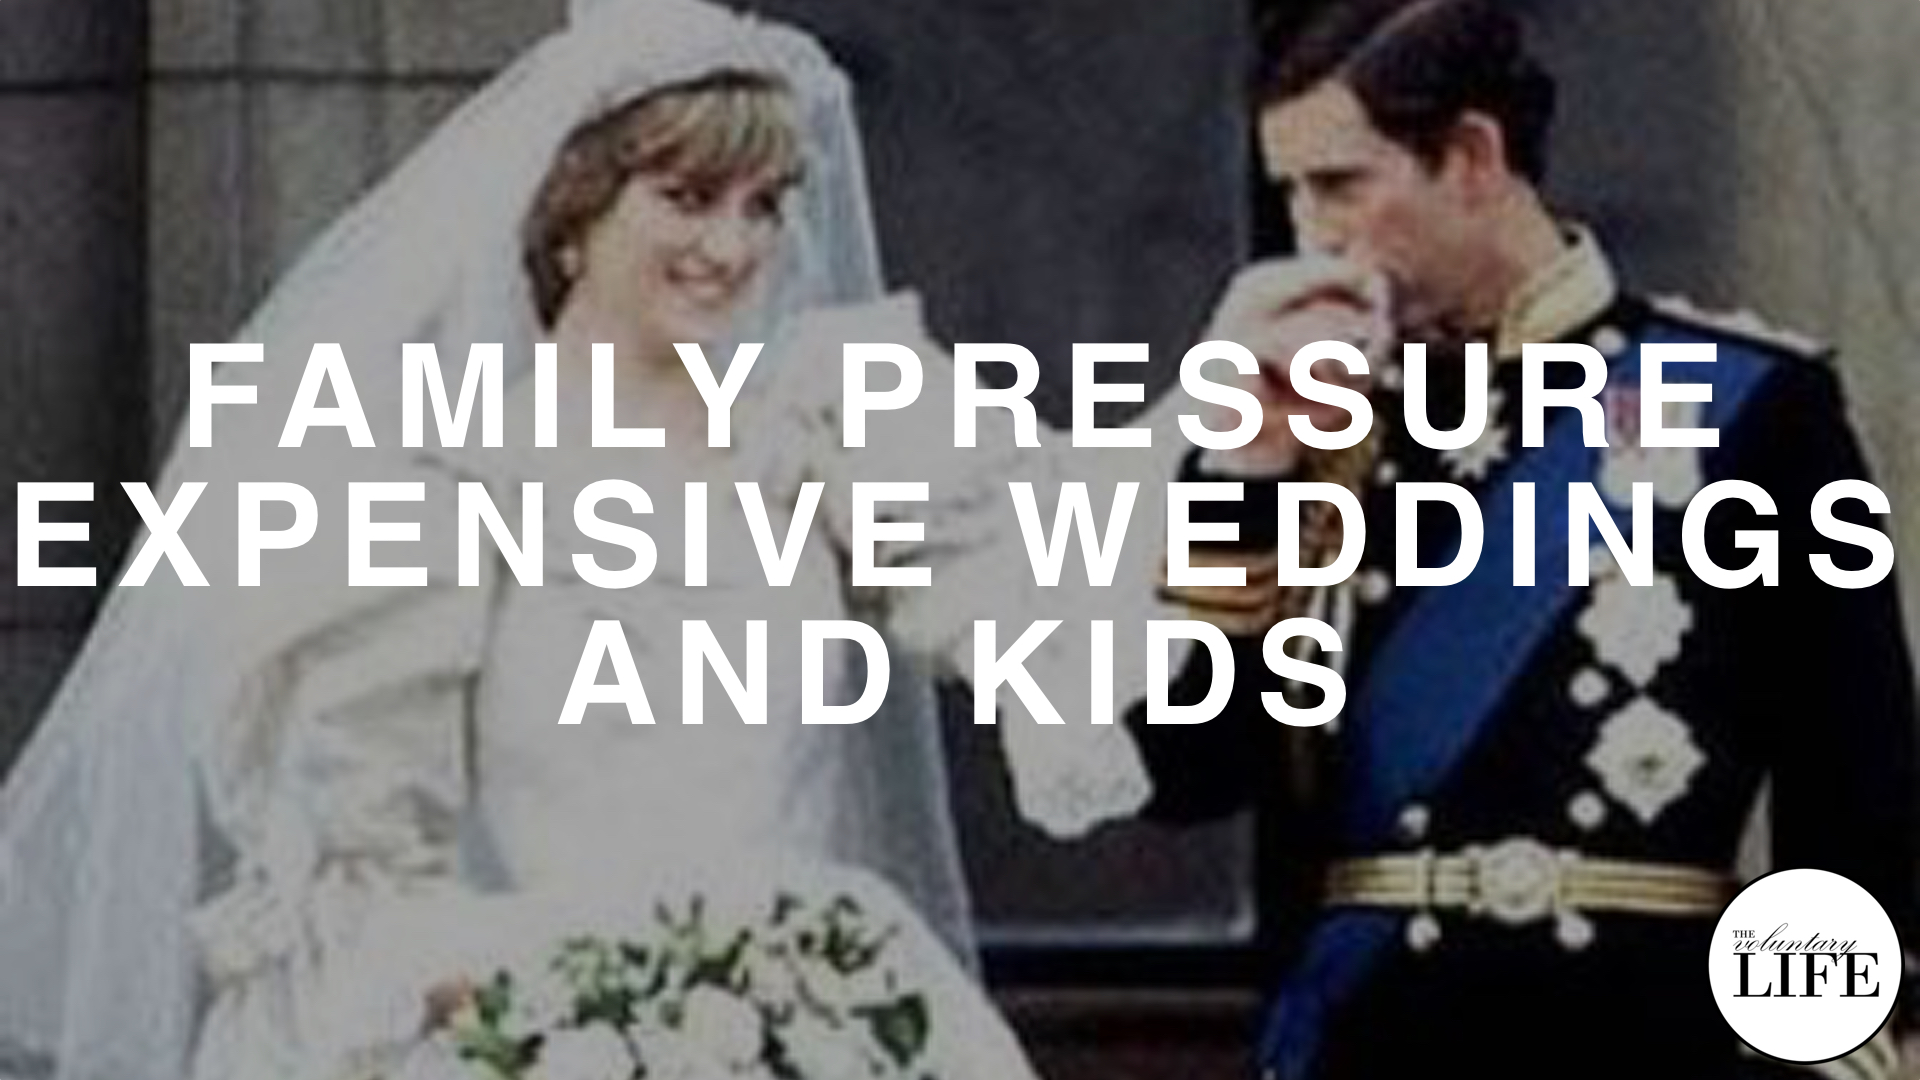 268 Family Pressure, Expensive Weddings, And Kids